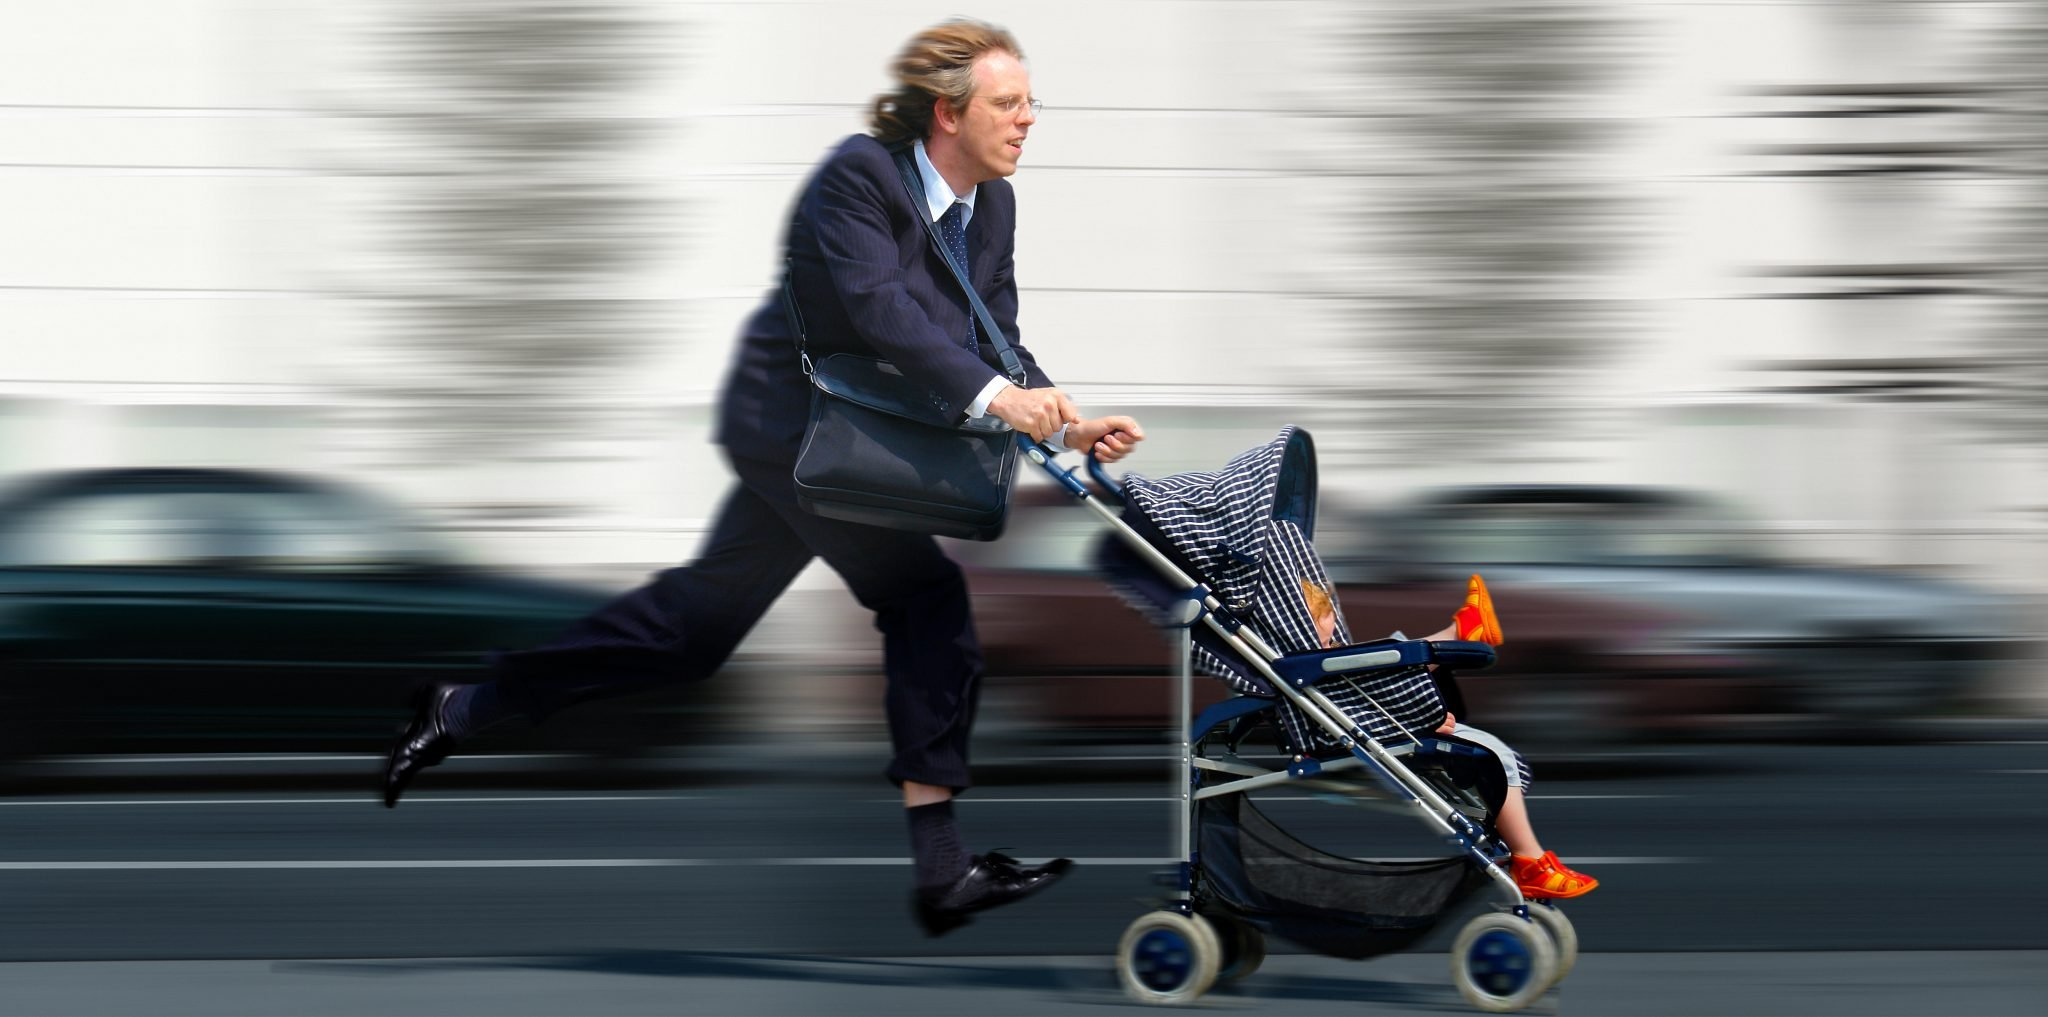 Businessman with baby is to late.